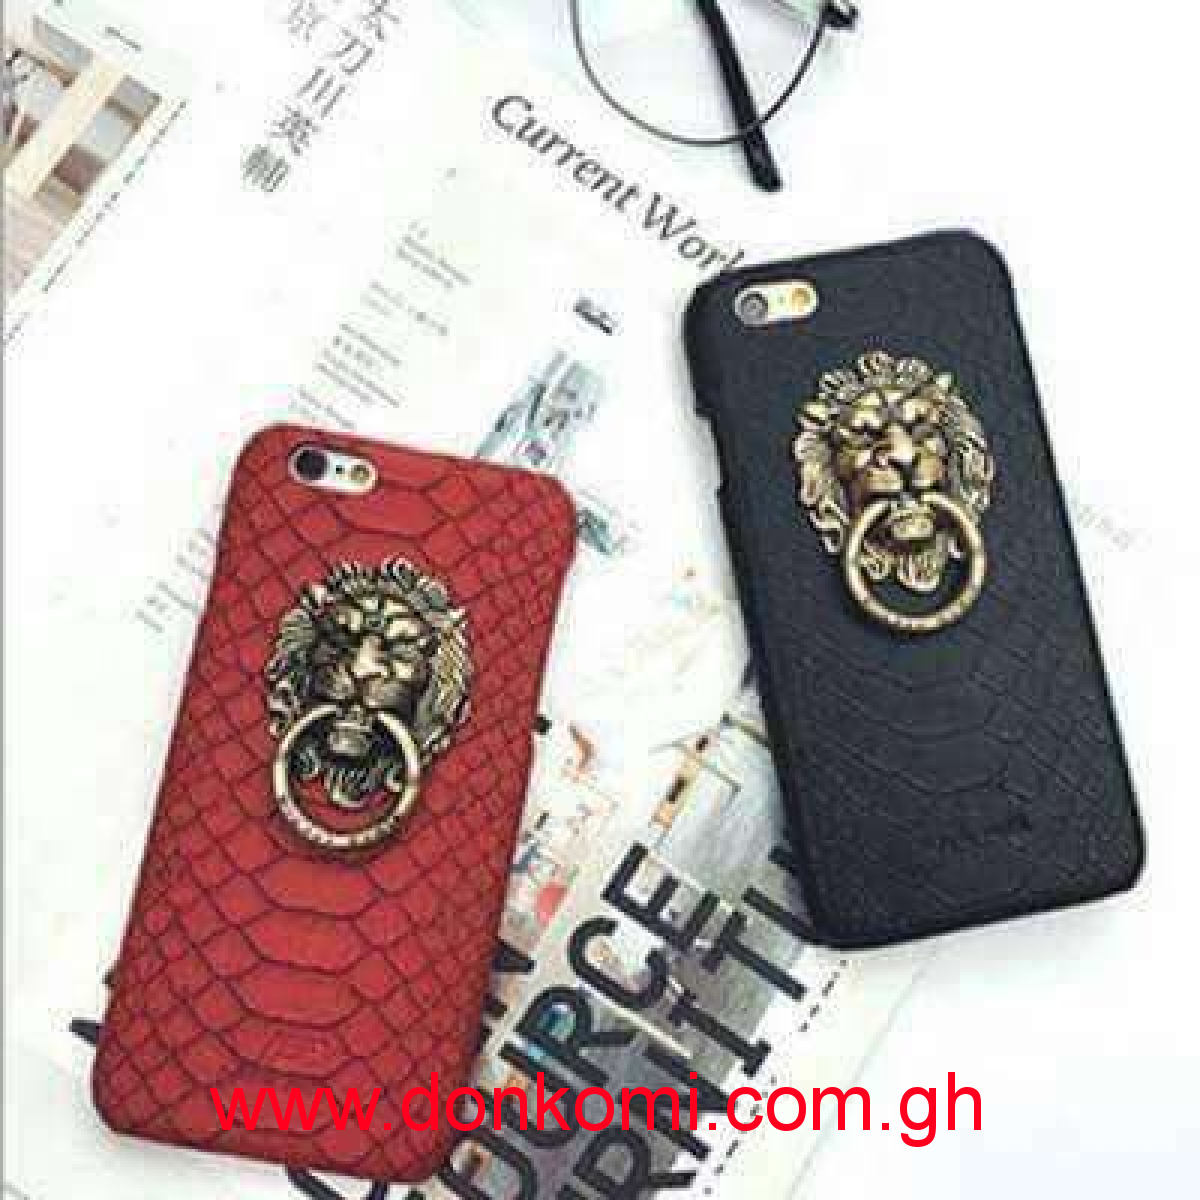 Lion Leather Skin Case for your IPhones